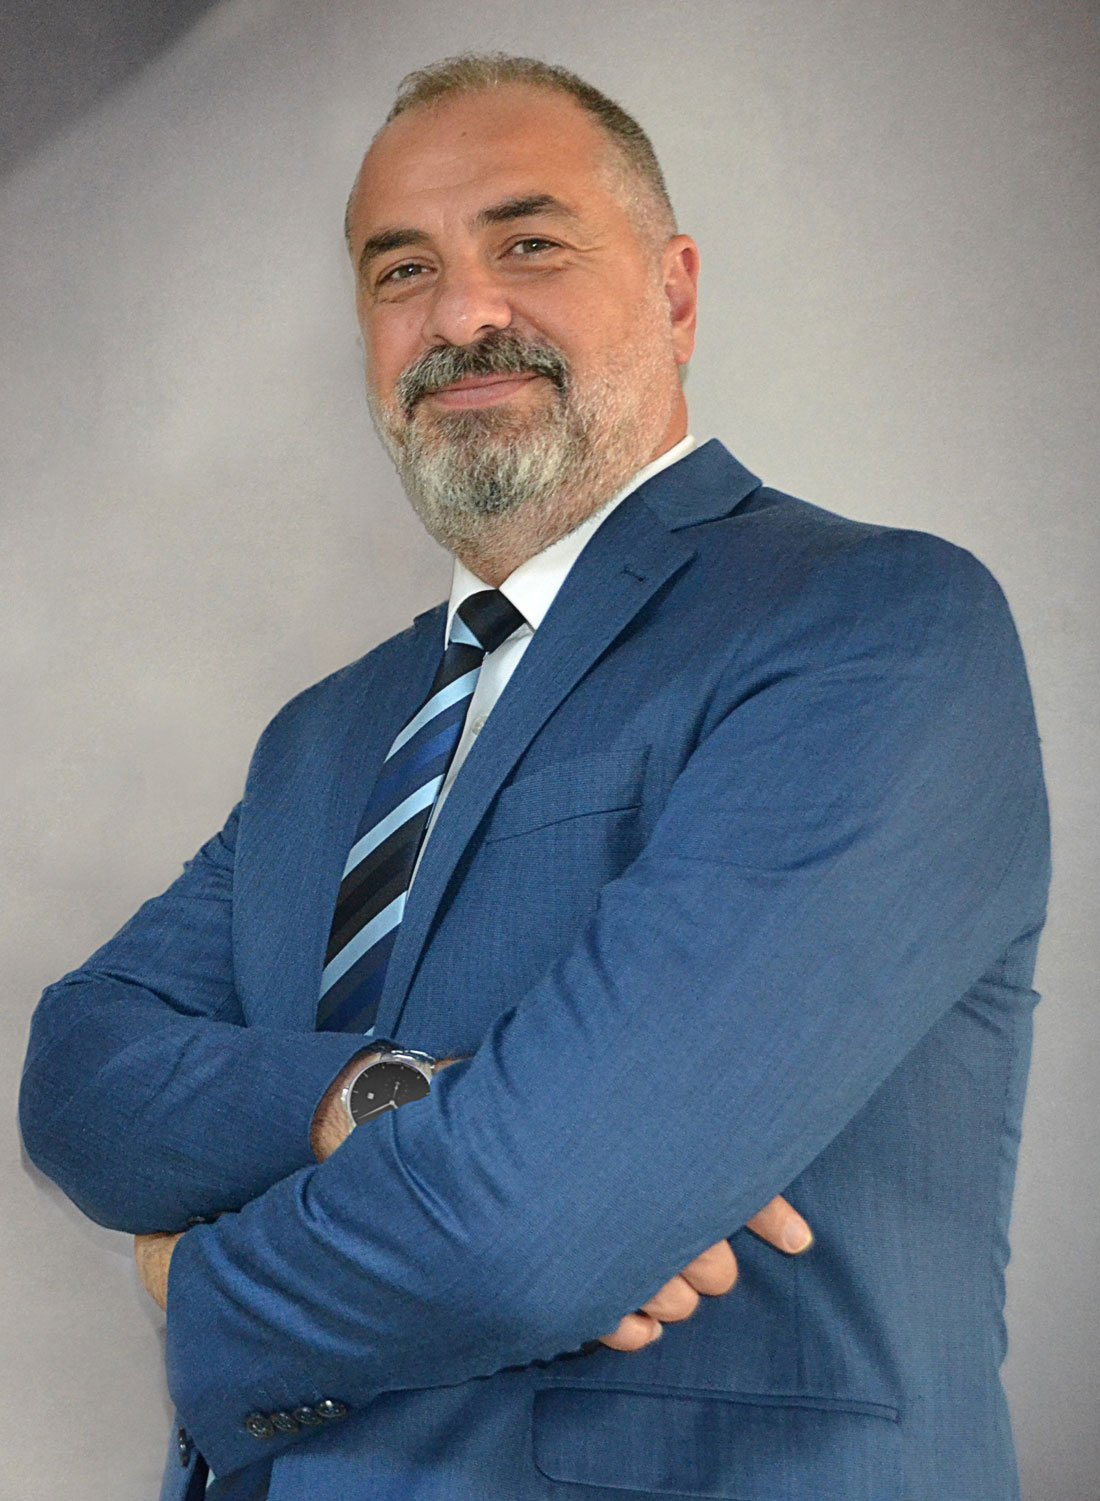 As general manager, Tolgahan Toskaya is in future responsible for sales and service for the core products of Koenig & Bauer in Turkey